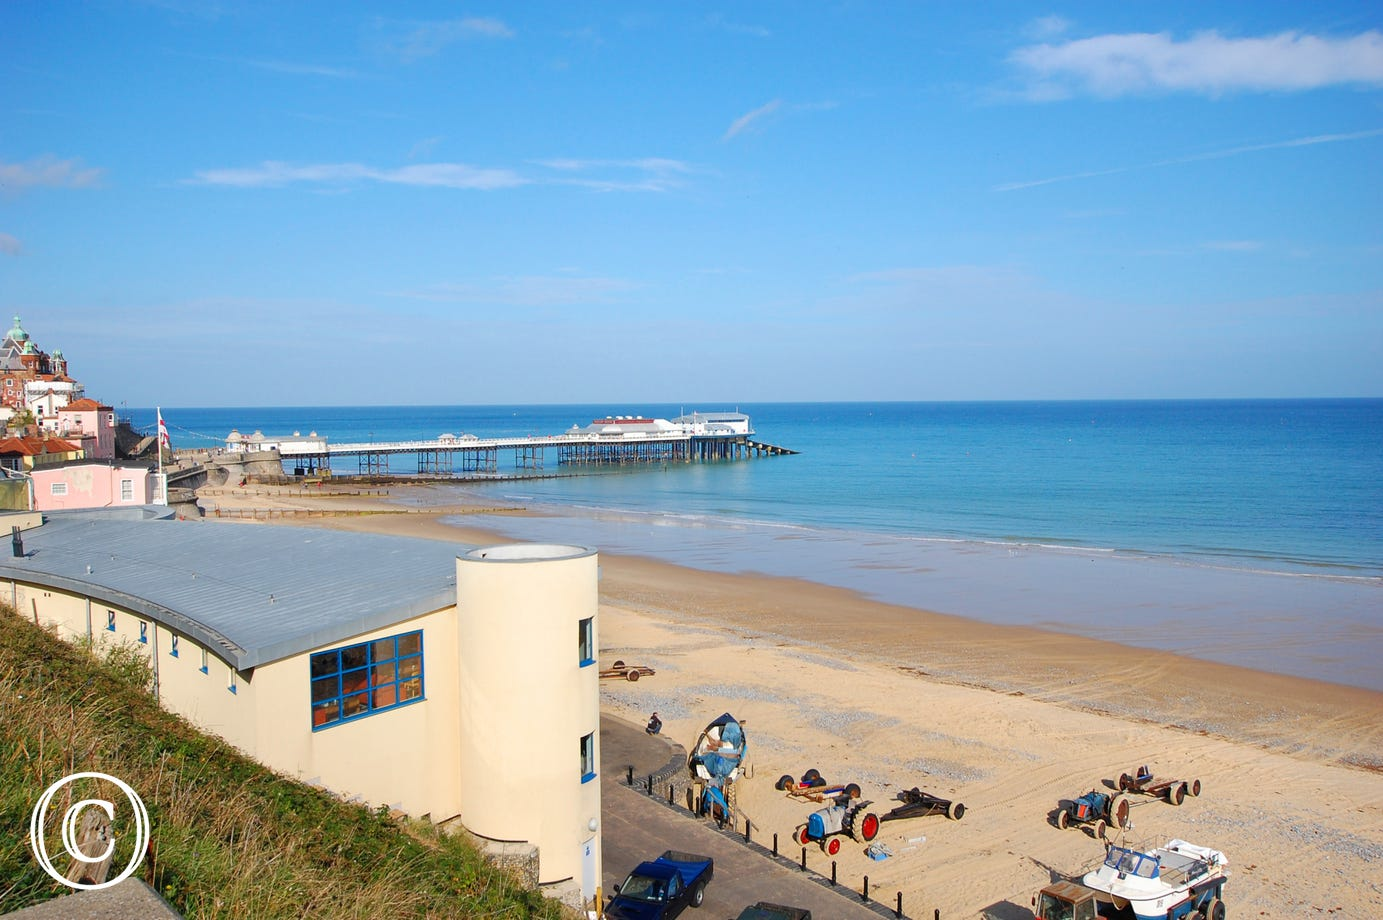 View of Cromer Beach and Pier.